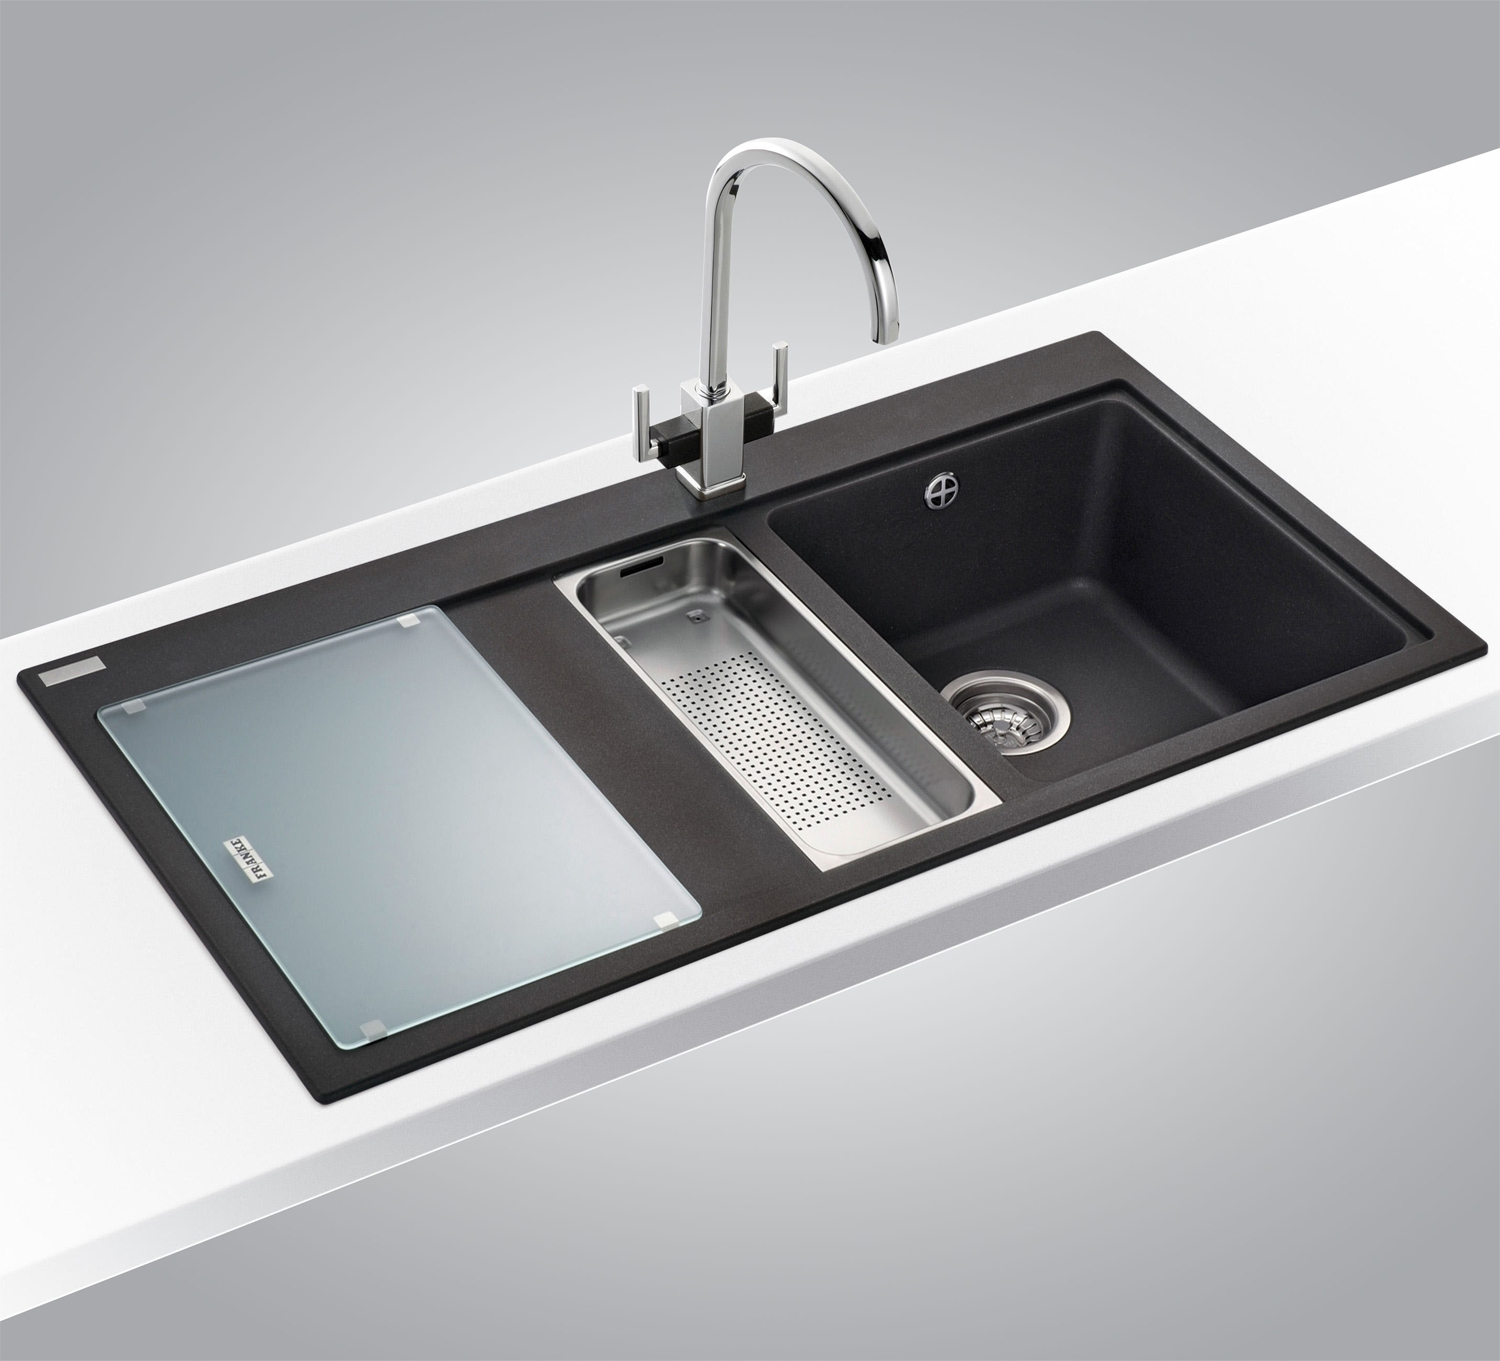 Accessori Bagno Franke : Lavello in fragranite di franke arredamenti volonghi